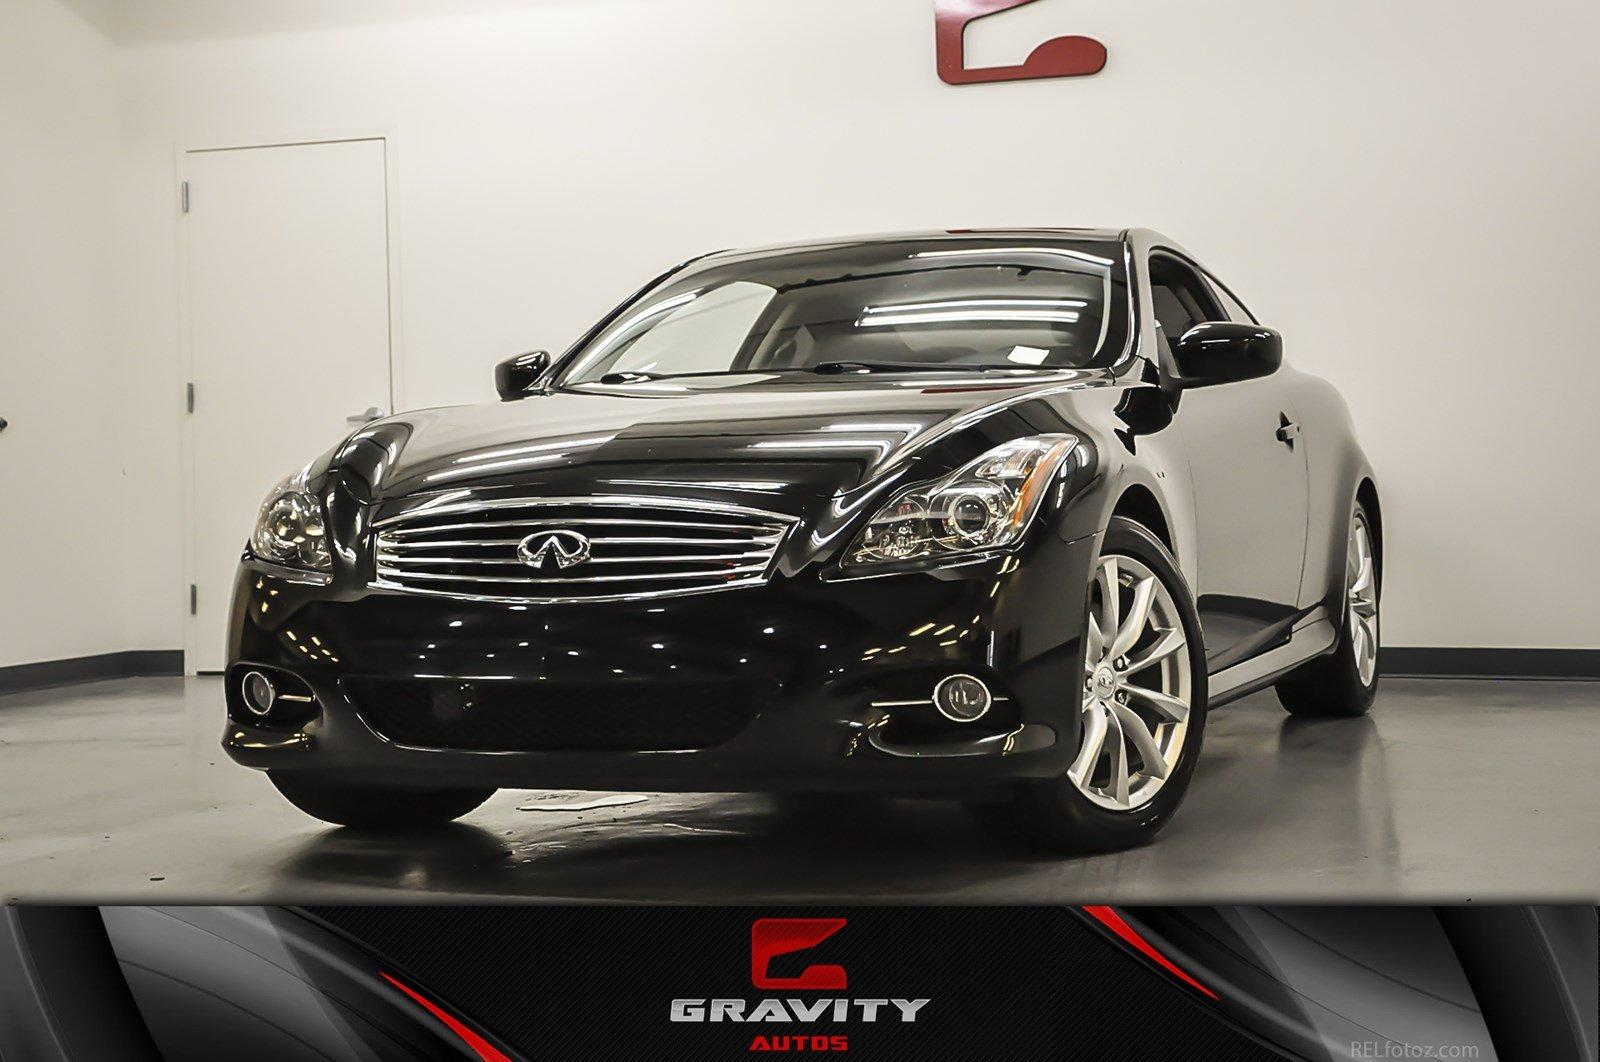 body detail modded wide car door ipl used air infinity suspension sale infiniti coupe for